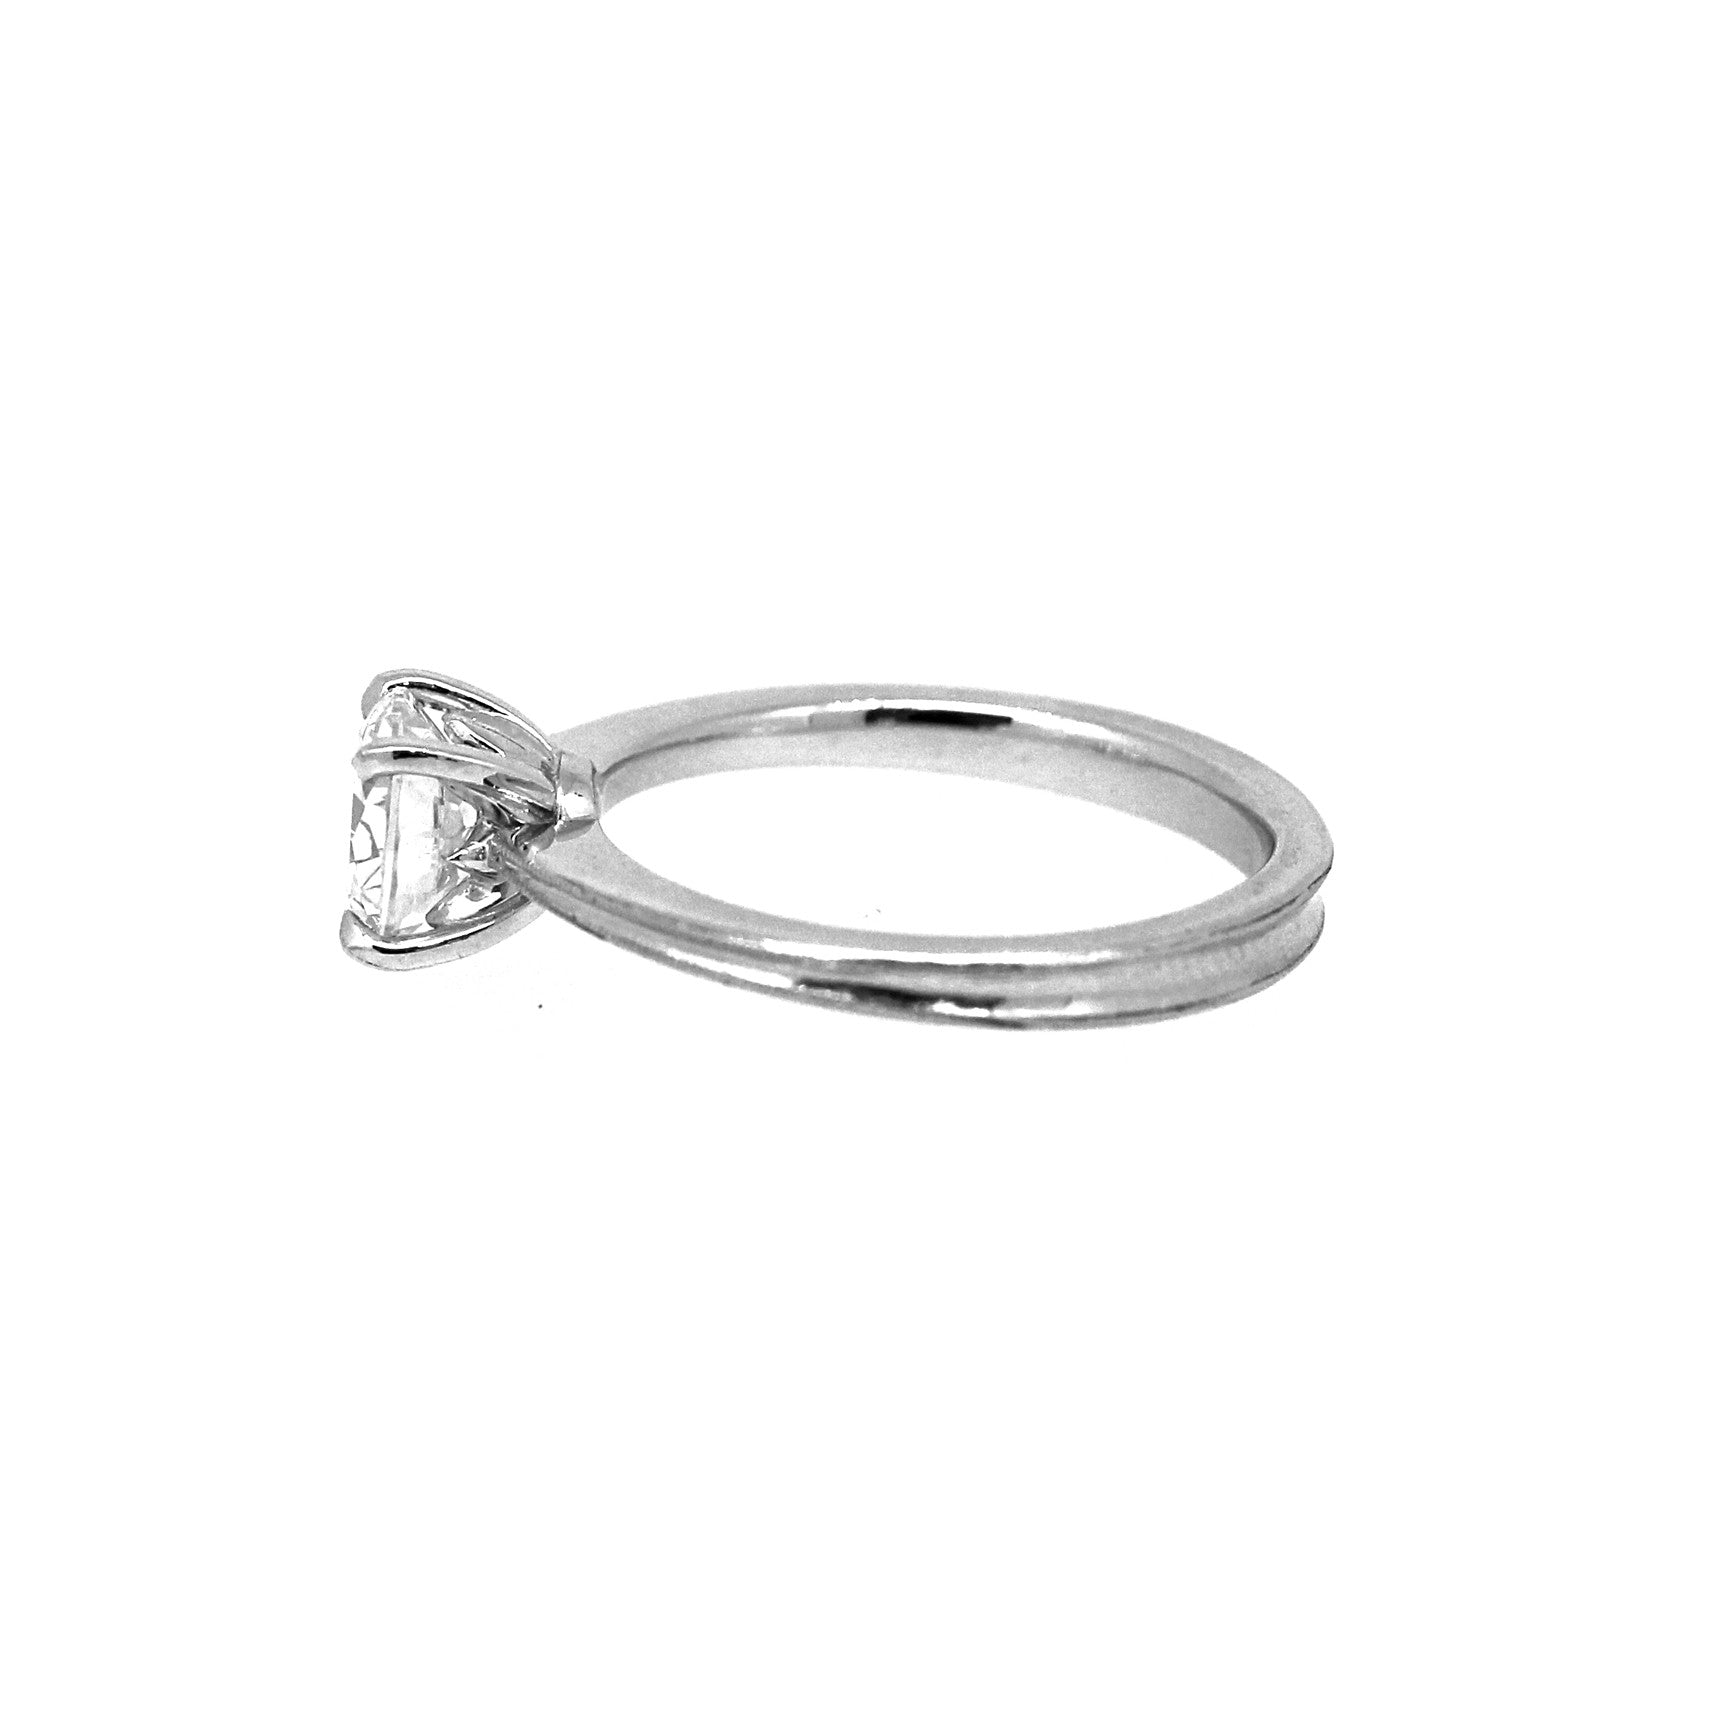 platinum solitaire flat engagement g goldtriangle ct product cut shape brickell prongsolitaireengagement serr ring rings round band diamond plwhite